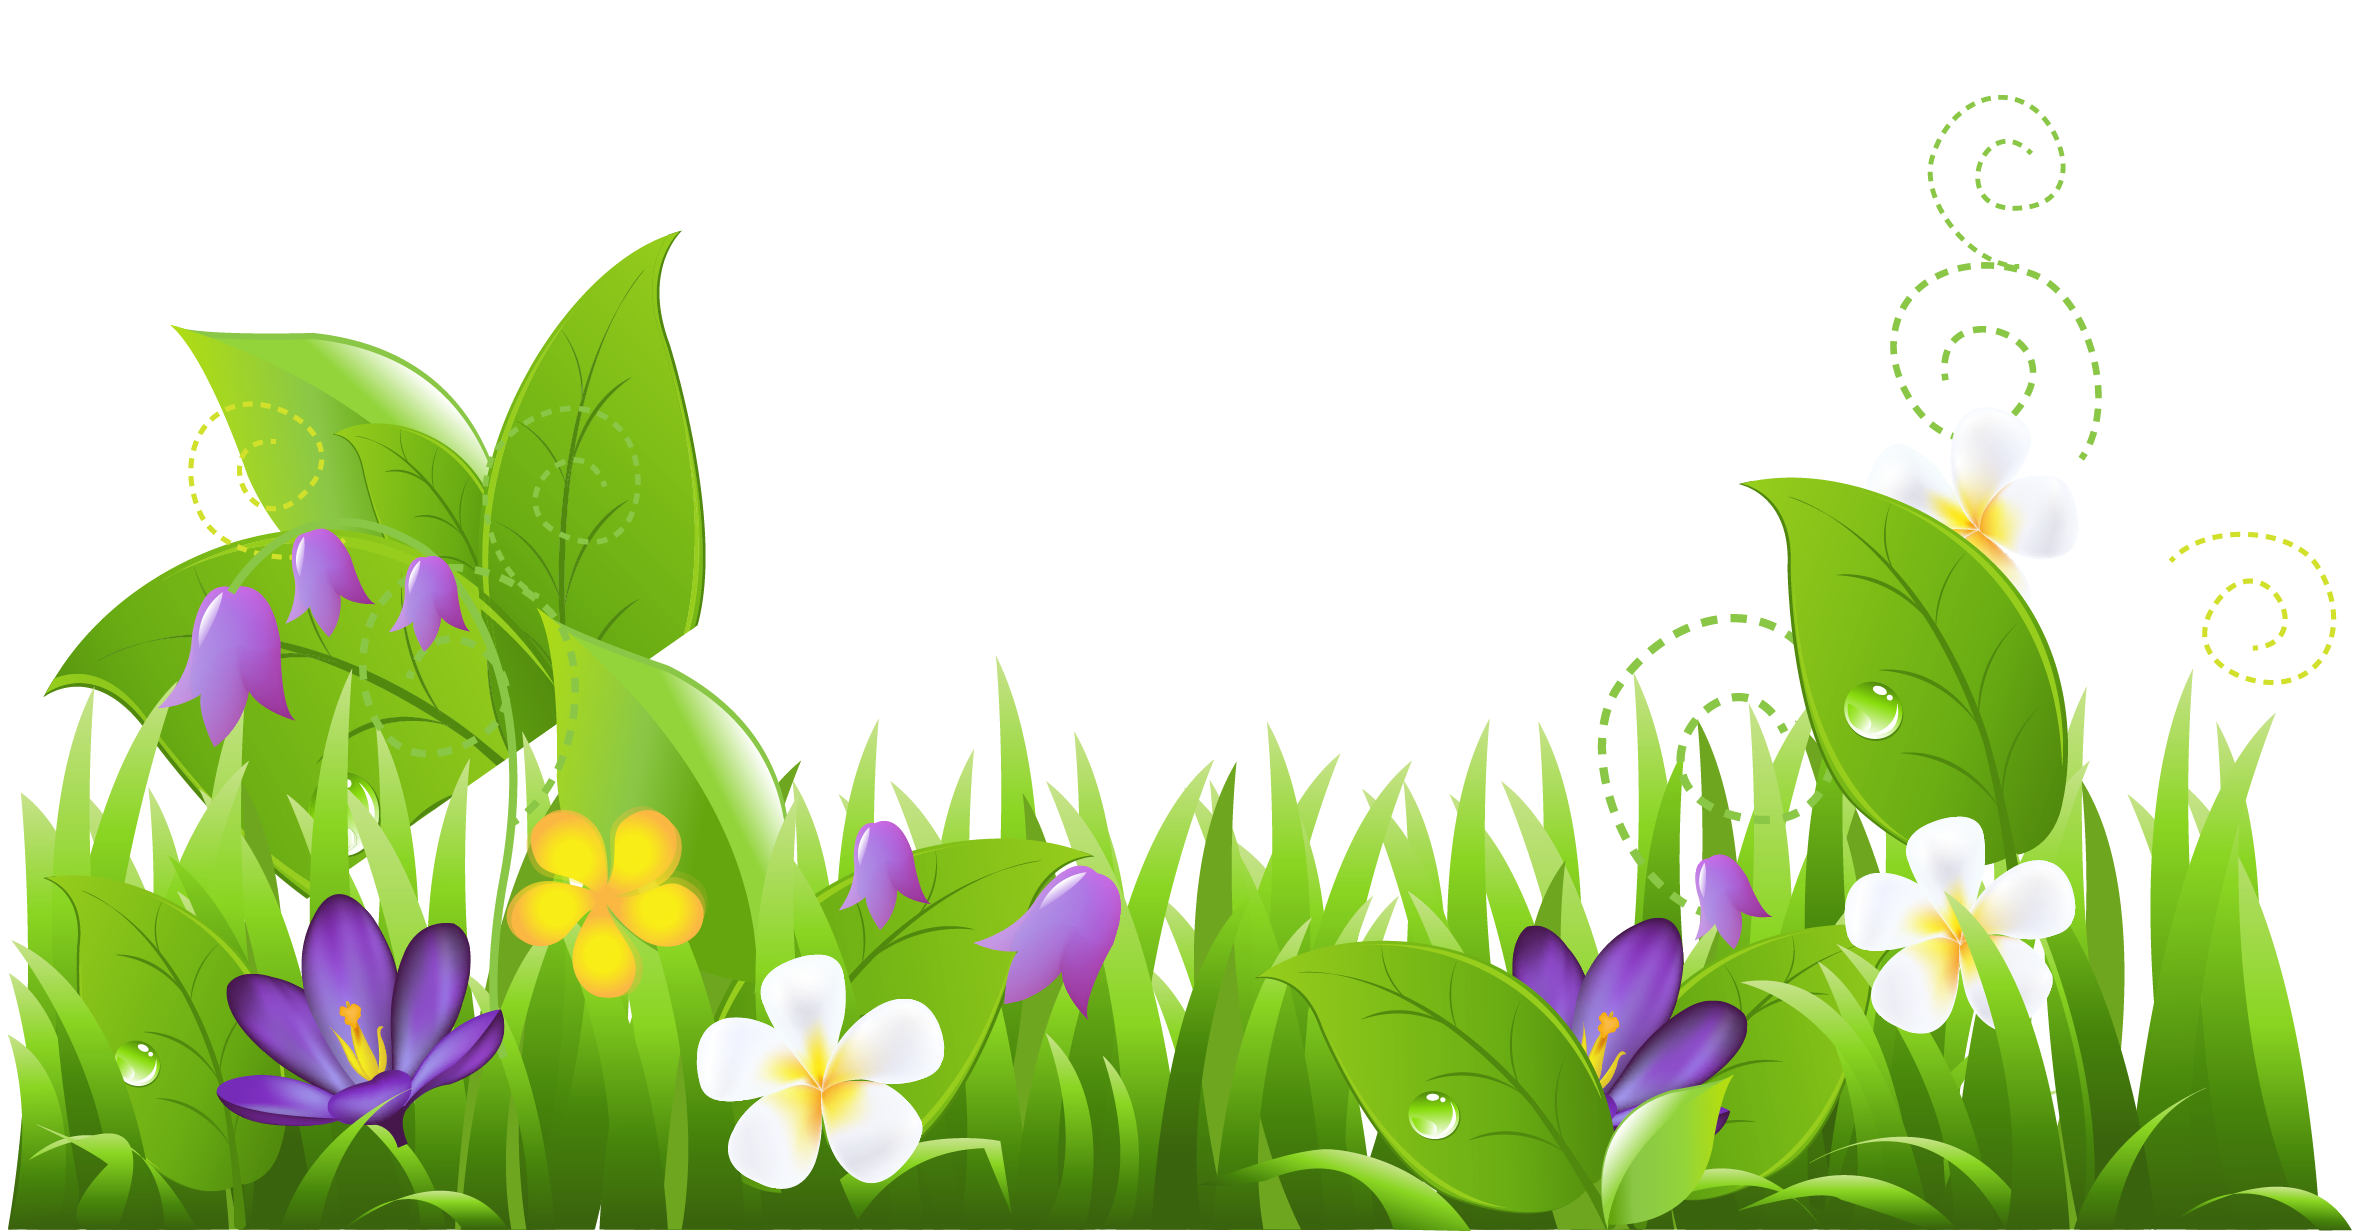 Grass and flowers clipart clipart clipart image